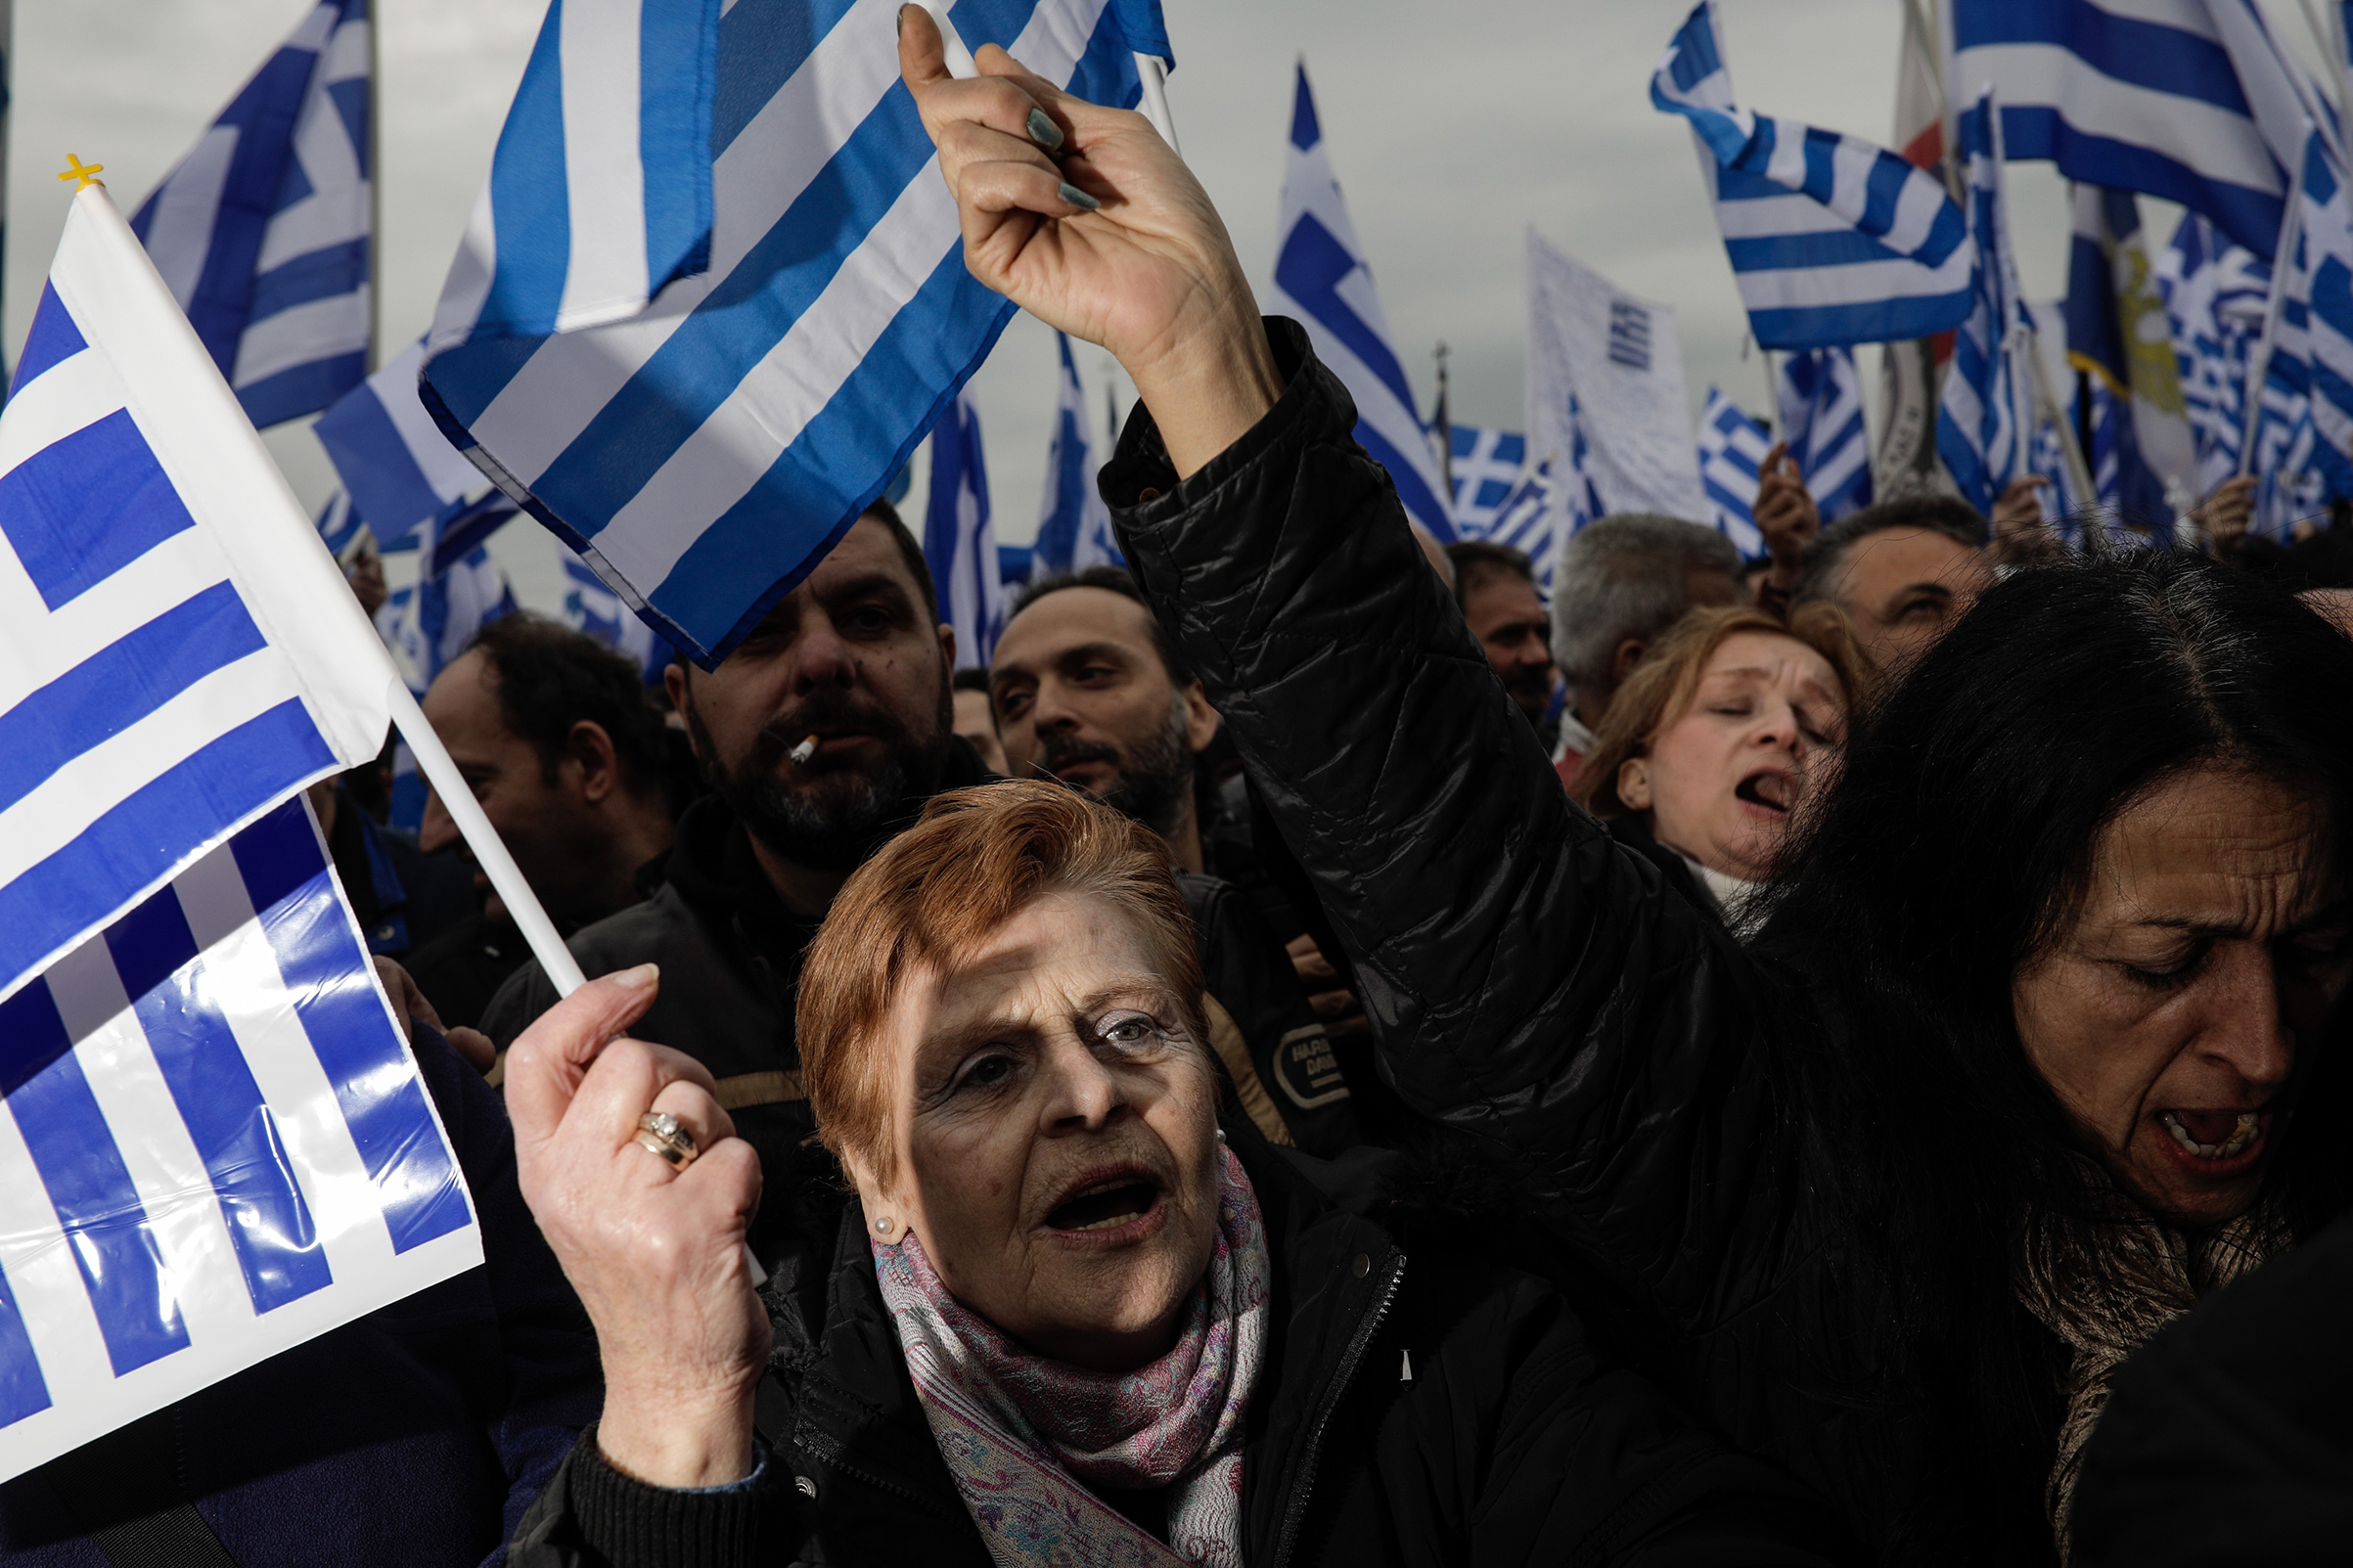 Protesters take to the streets                      in Thessaloniki, Greece, on Jan. 21